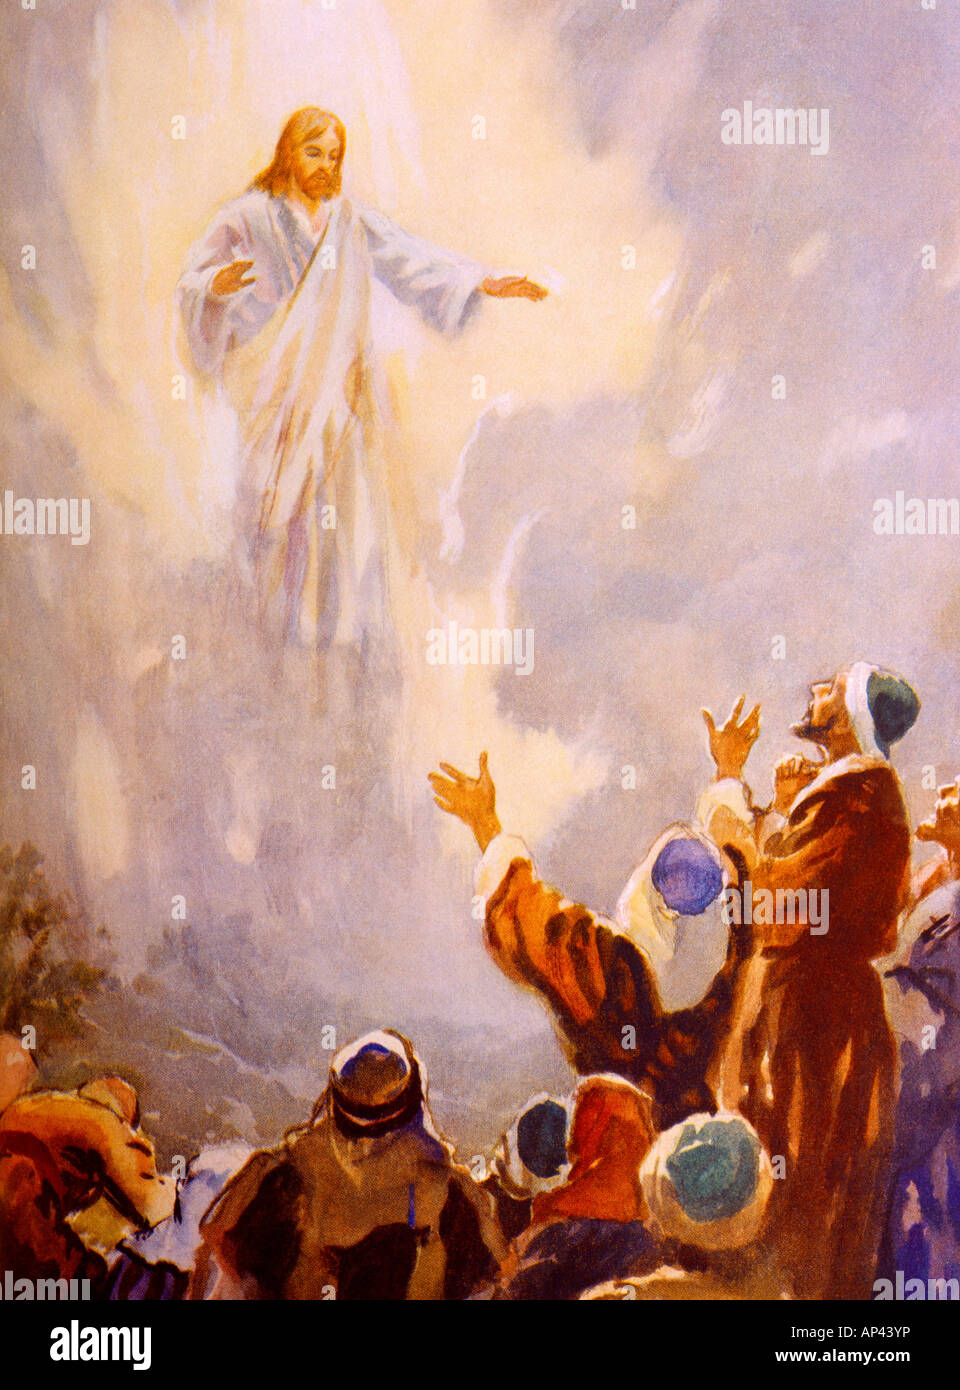 Jesus Passes From The Sight Of His Followers Painting By Henry Coller Bible Story - Stock Image